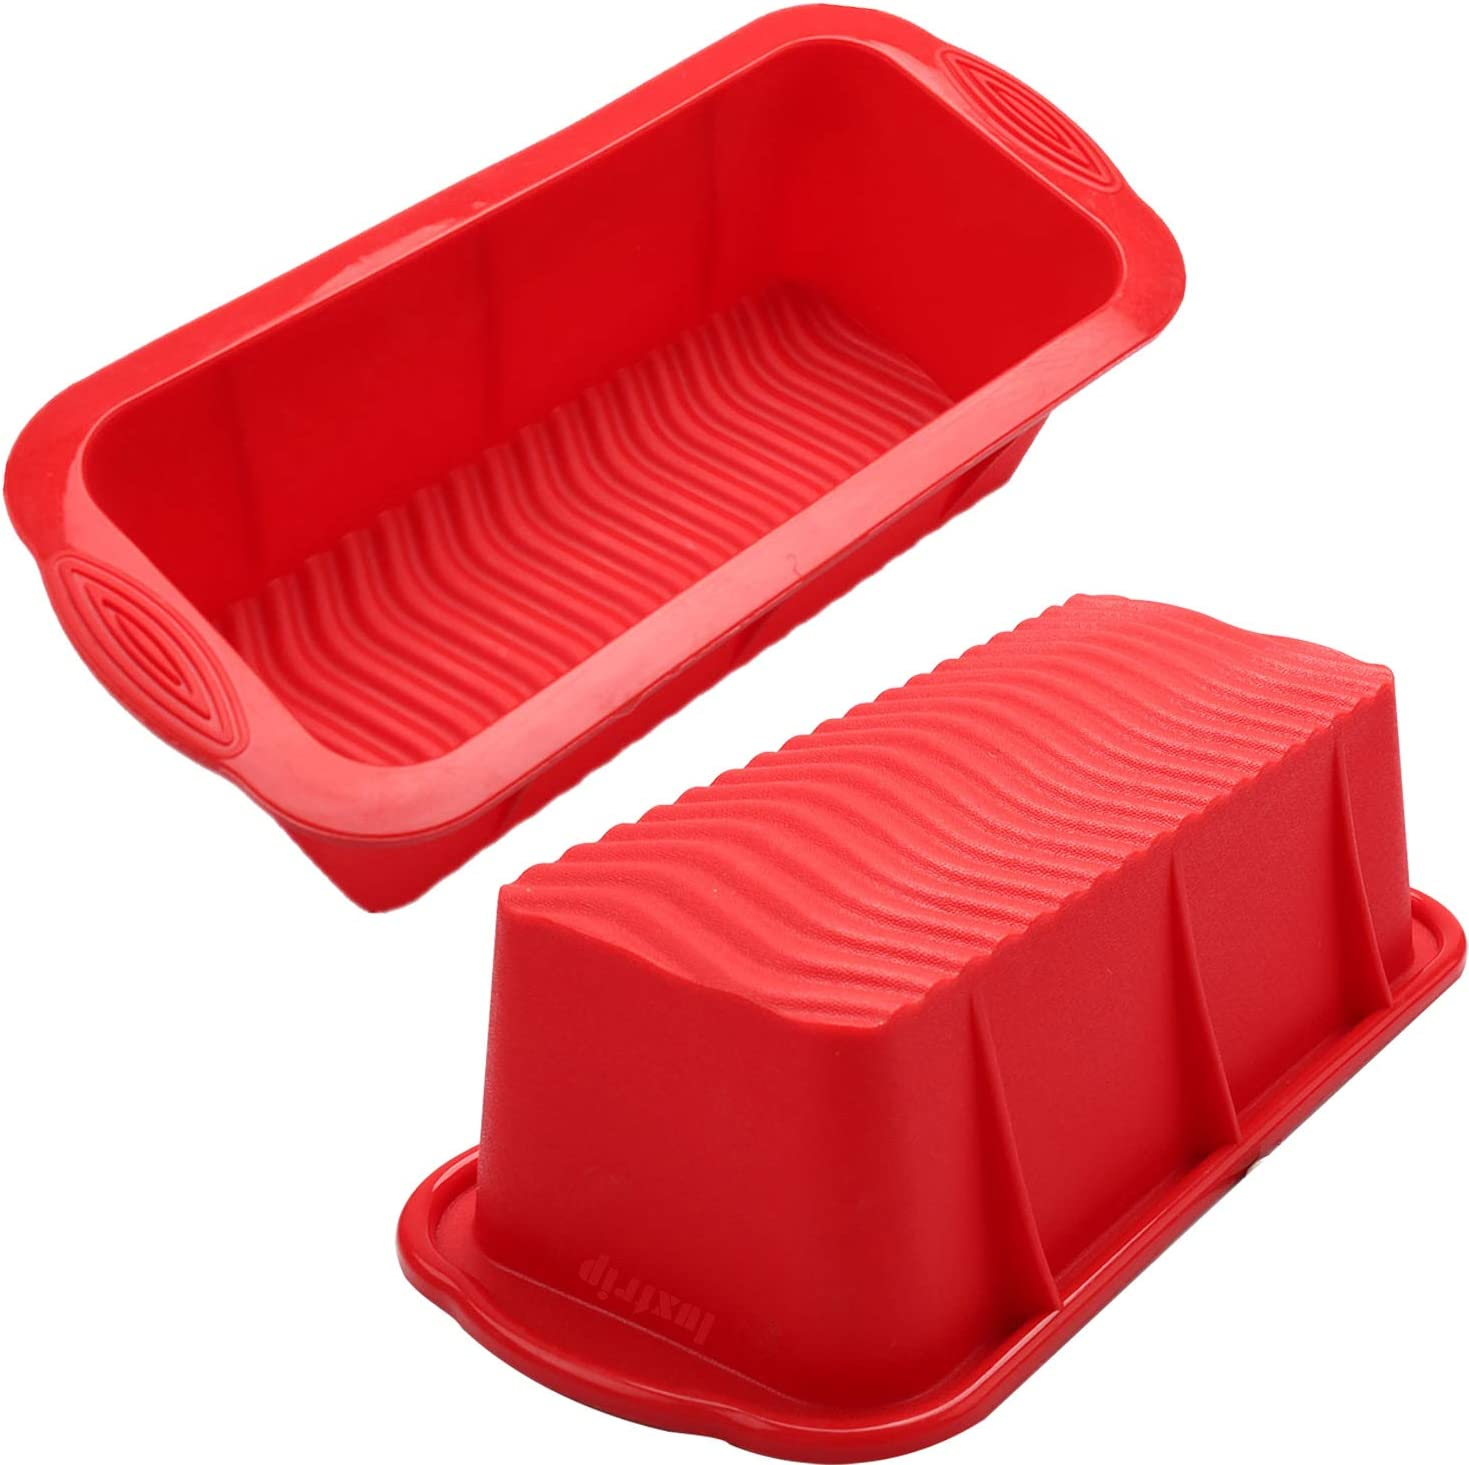 Luxtrip 2 pack Silicone Loaf Pan,Non-stick Loaf Mould for Homemade Baking Cakes and Bread,BPA Free,Dishwasher,Oven and Microwave safer